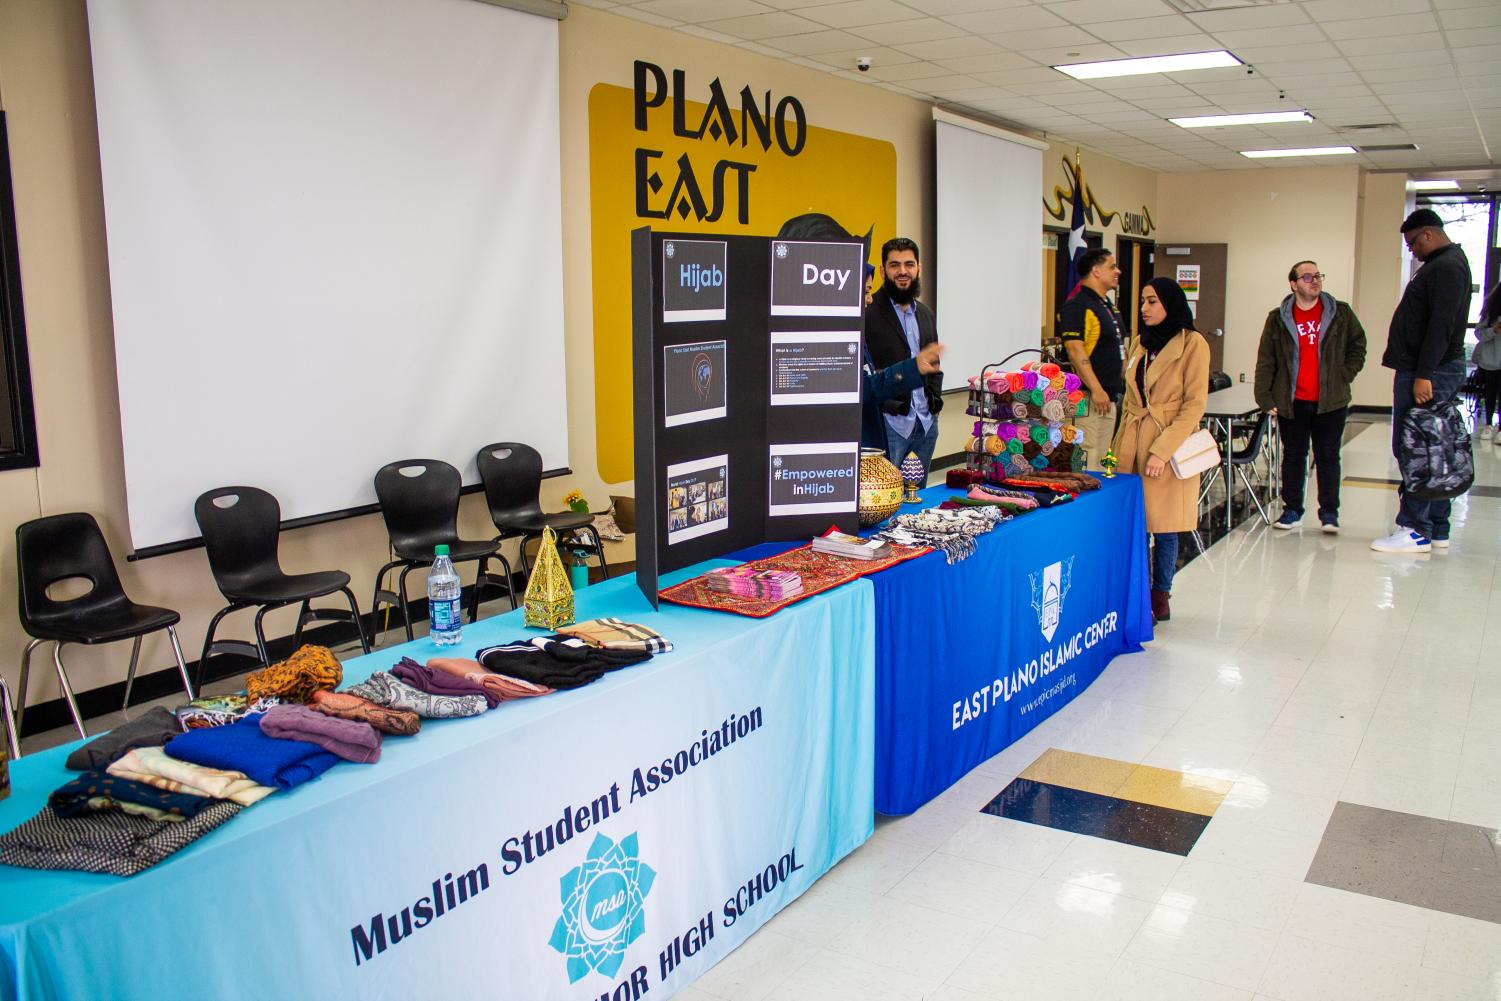 East+Plano+Islamic+Center+%28EPIC%29+volunteers+Nomana+Syed%2C+Ustadh+Morad+Barghouti+and+Sophia+Khan+set+up+a+display+of+headscarves+and+an+informational+tri-fold+board.+Syed%2C+Barghouti+and+Khan+arrived+prior+to+the+start+of+A+lunch+to+set+up+the+display.